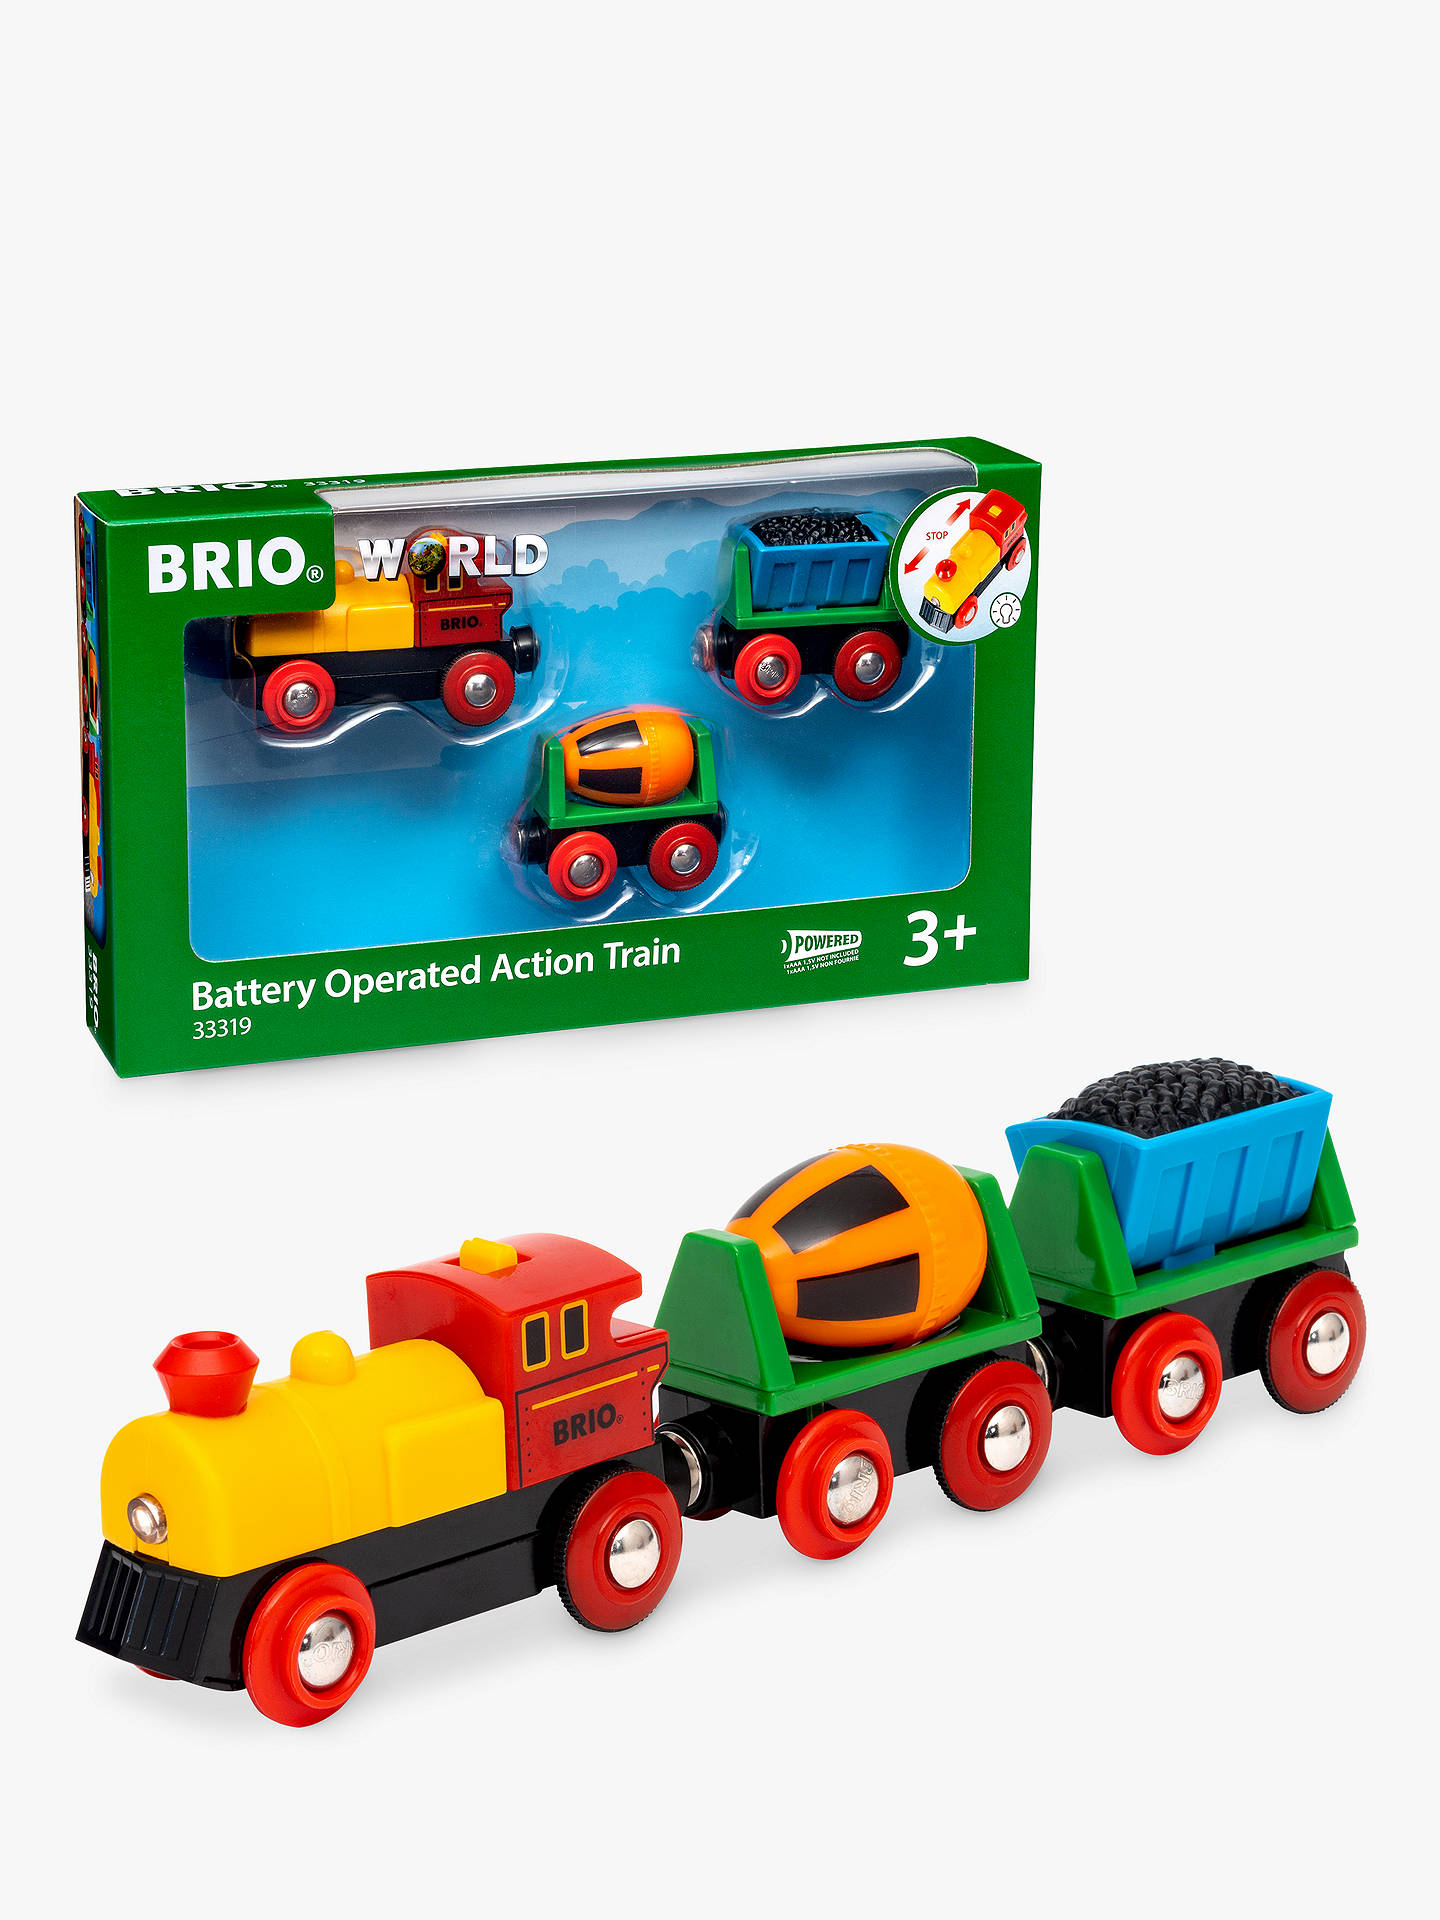 Buy BRIO World Battery Operated Action Train Online at johnlewis.com